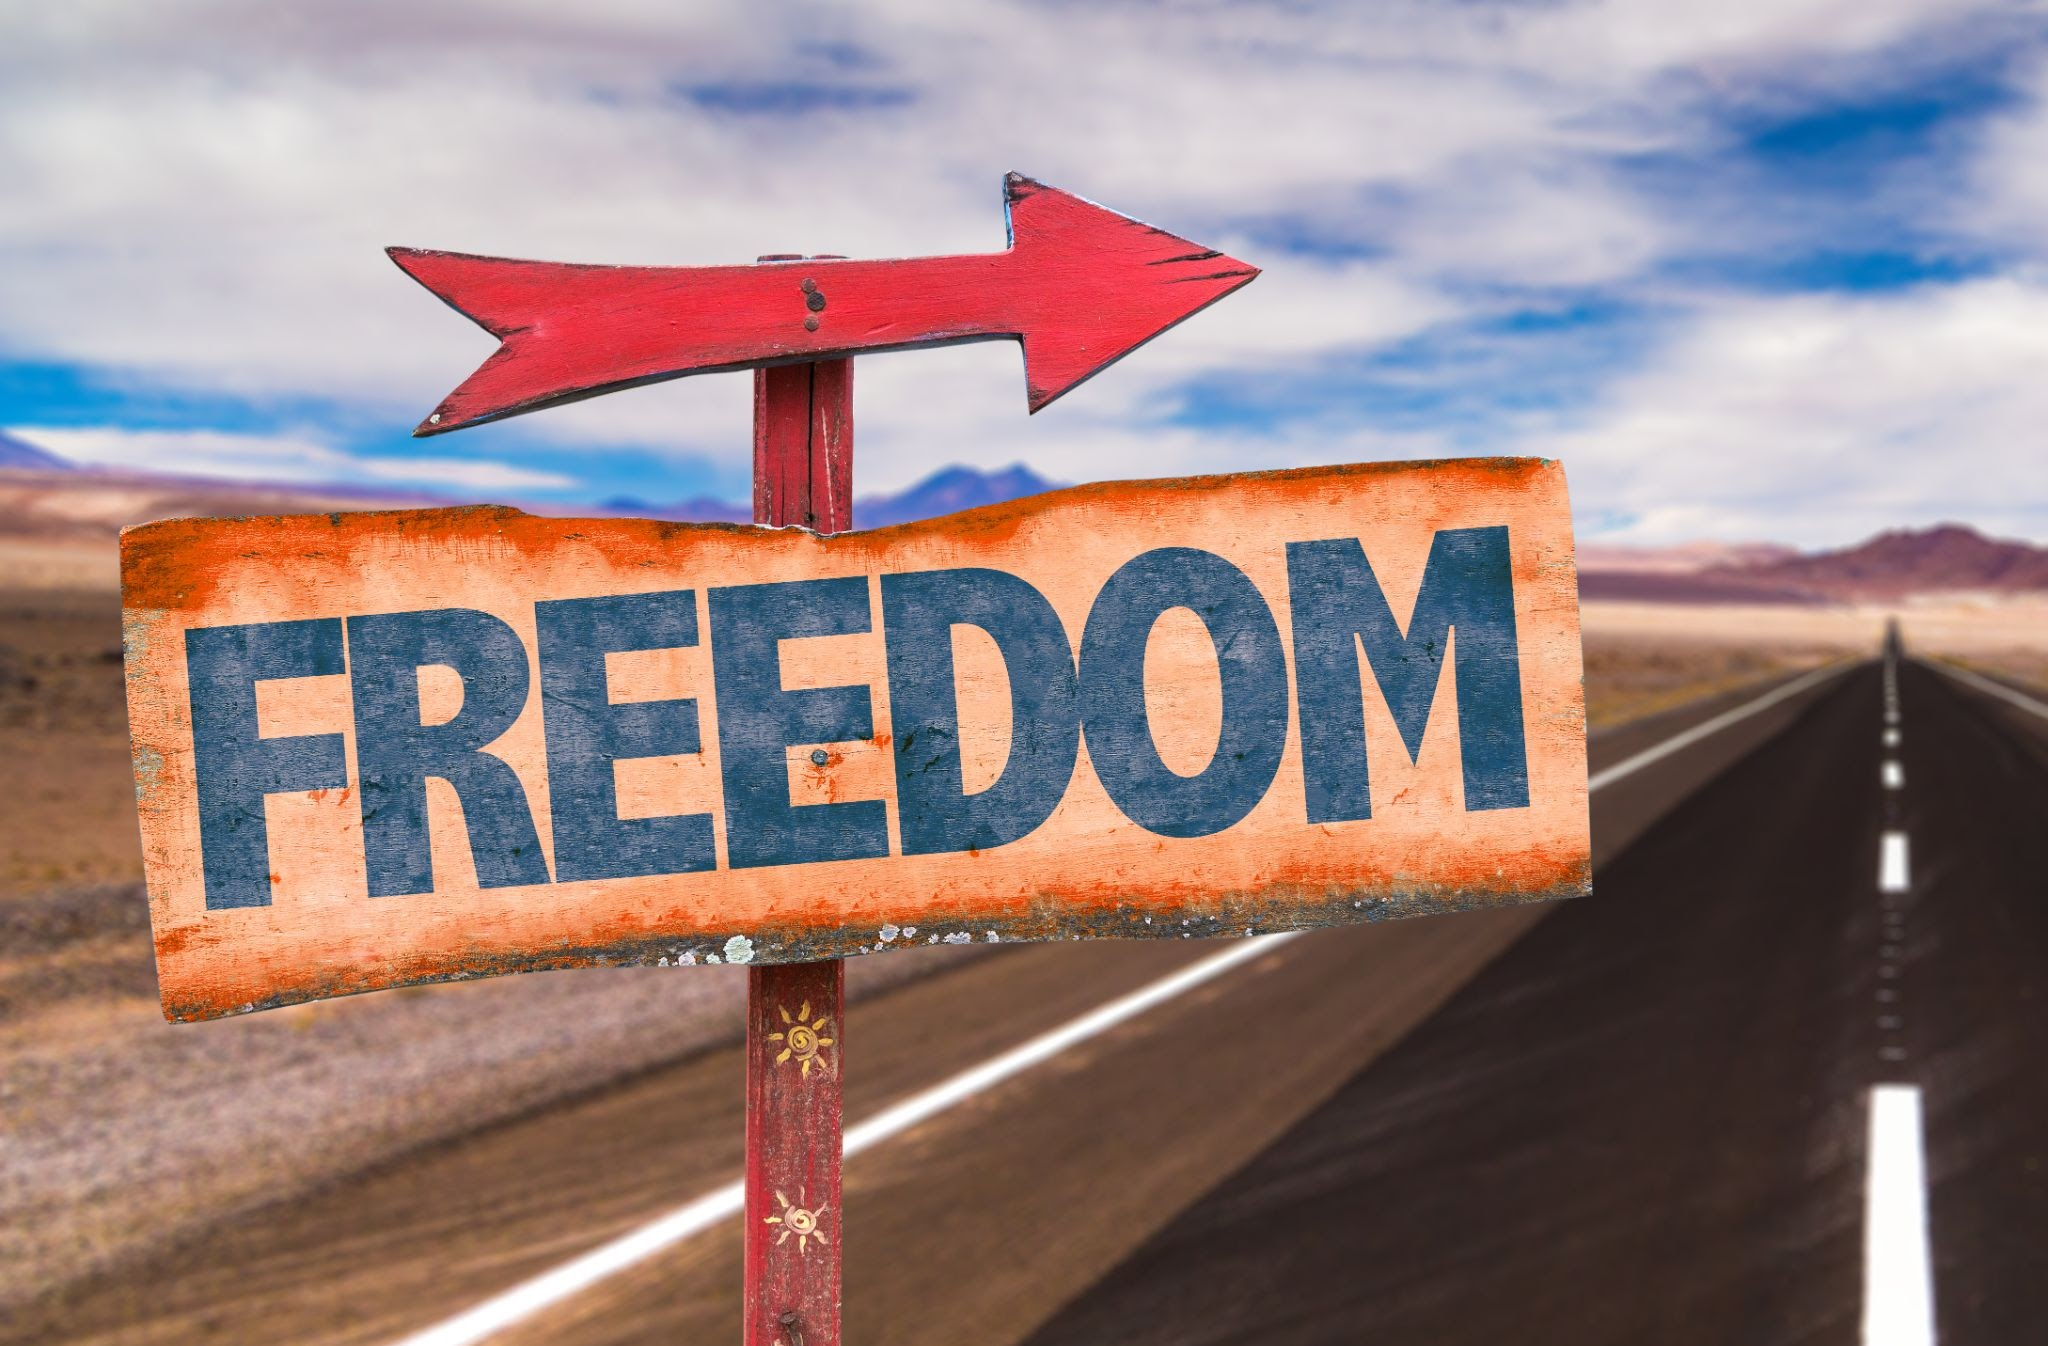 What are you going to do now that we are all becoming 'freer'